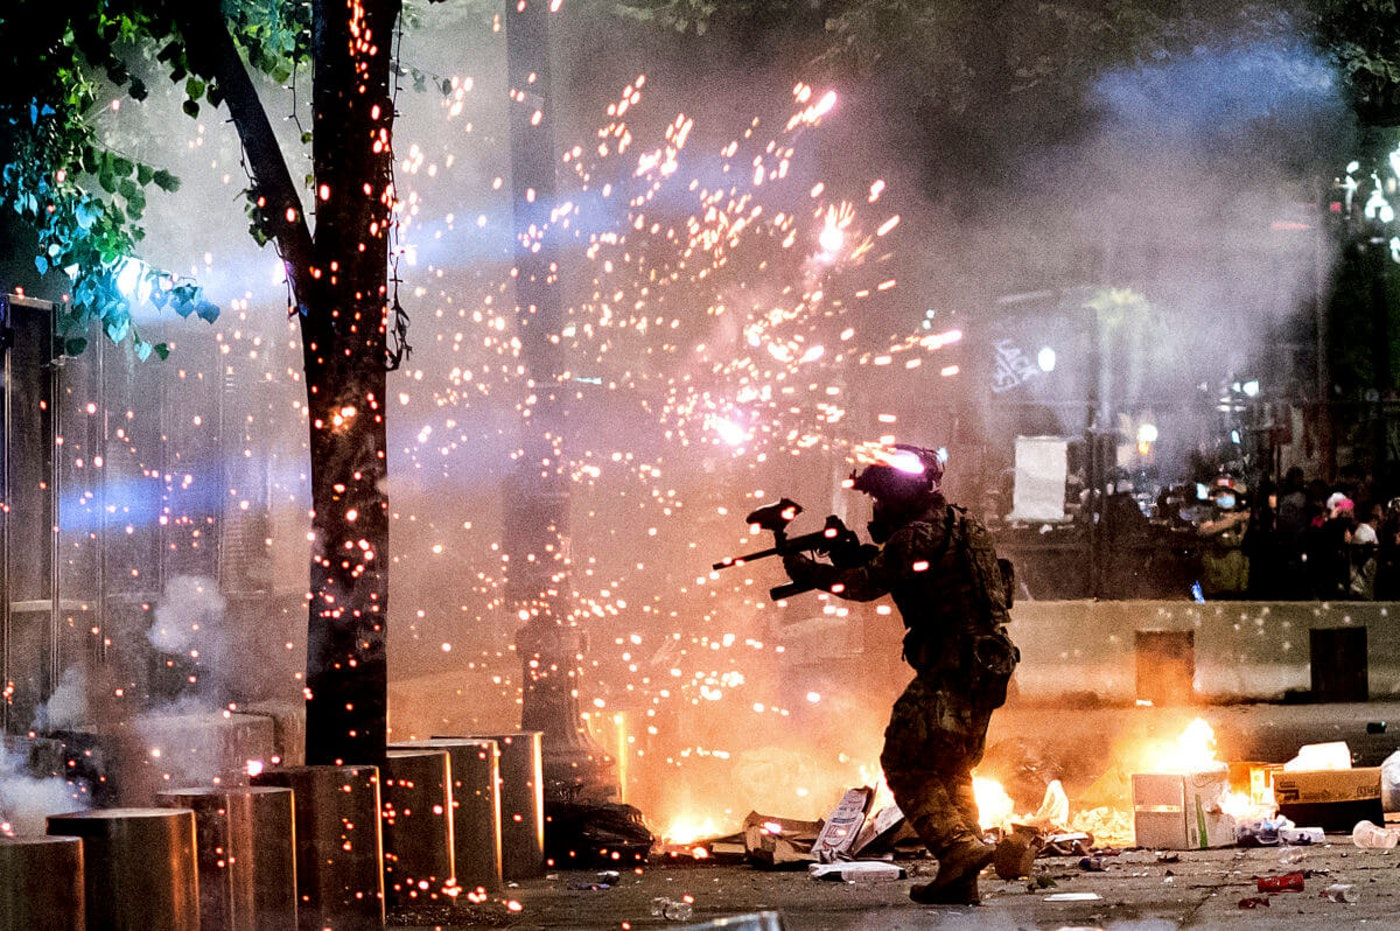 A federal officer fires crowd control munitions at Black Lives Matter protesters at the Mark O. Hatfield United States Courthouse on Friday, July 24, 2020, in Portland, Ore. Since federal officers arrived in downtown Portland in early July, violent protests have largely been limited to a two block radius from the courthouse. (AP Photo/Noah Berger)